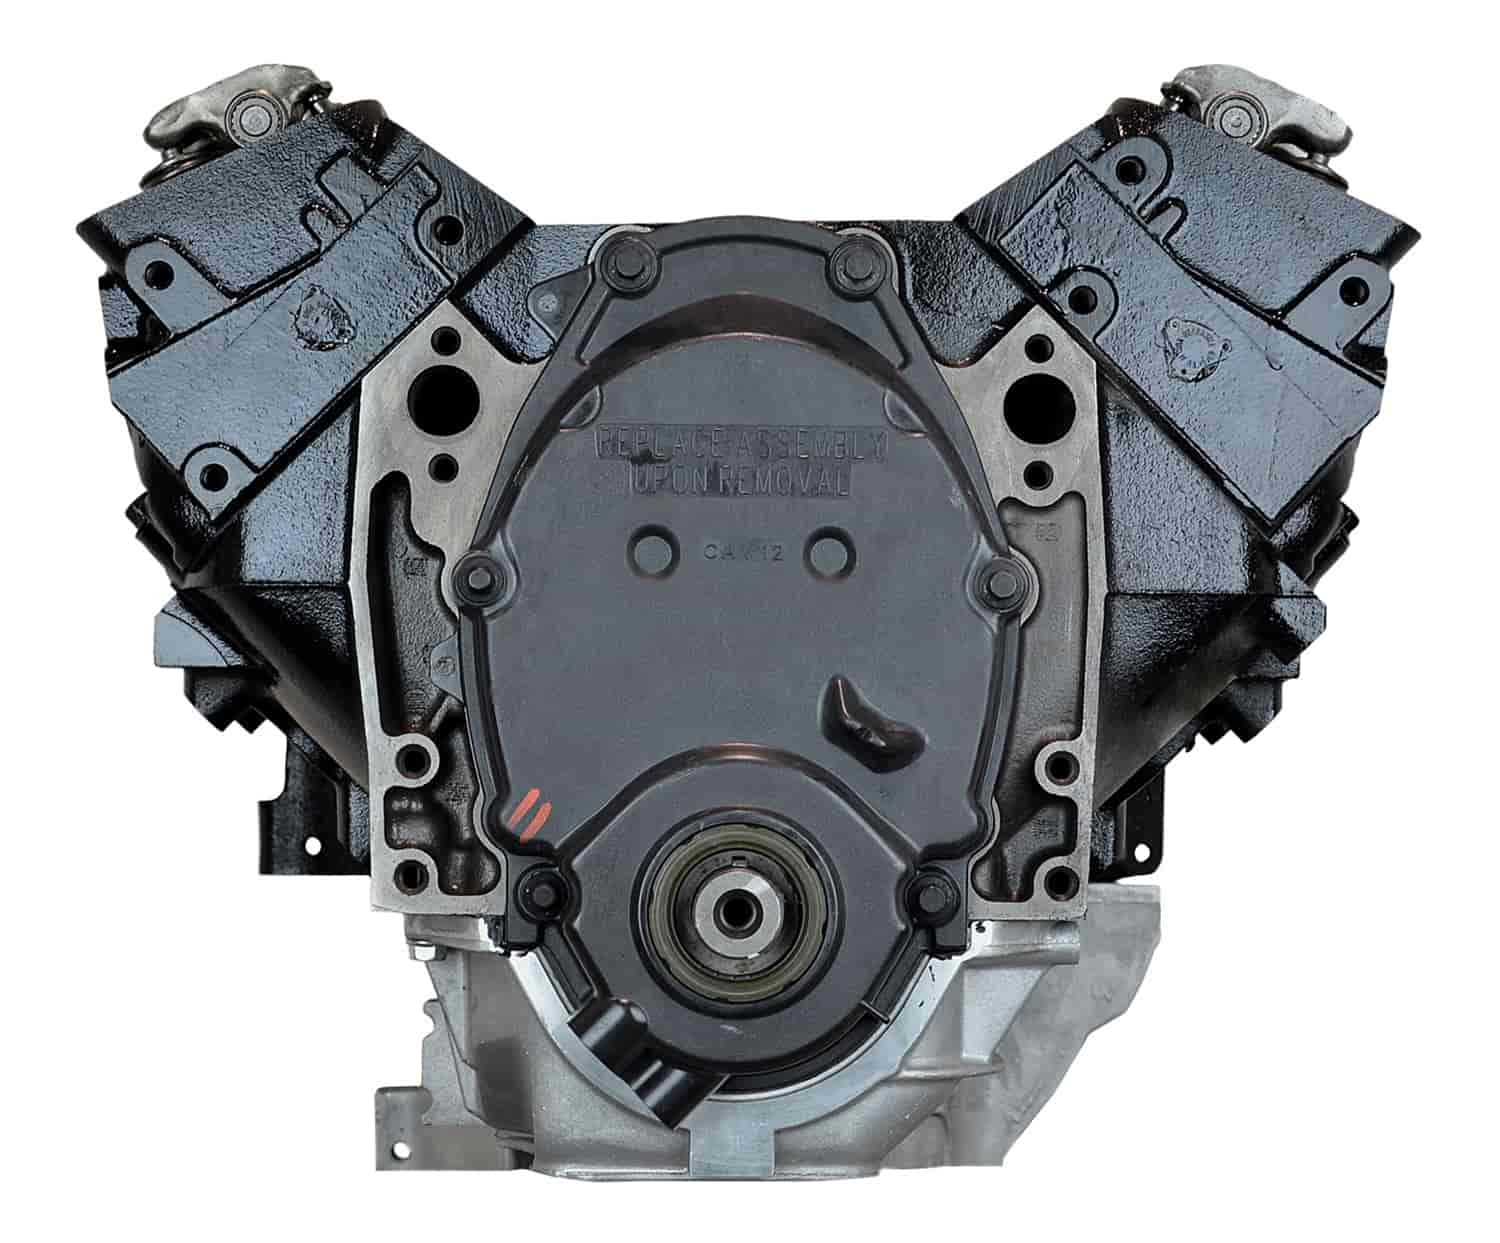 Gm Crate Engines >> ATK Engines VCW4: Remanufactured Crate Engine for 2001-2007 Chevy/GMC Truck, SUV & Van with 4.3L ...